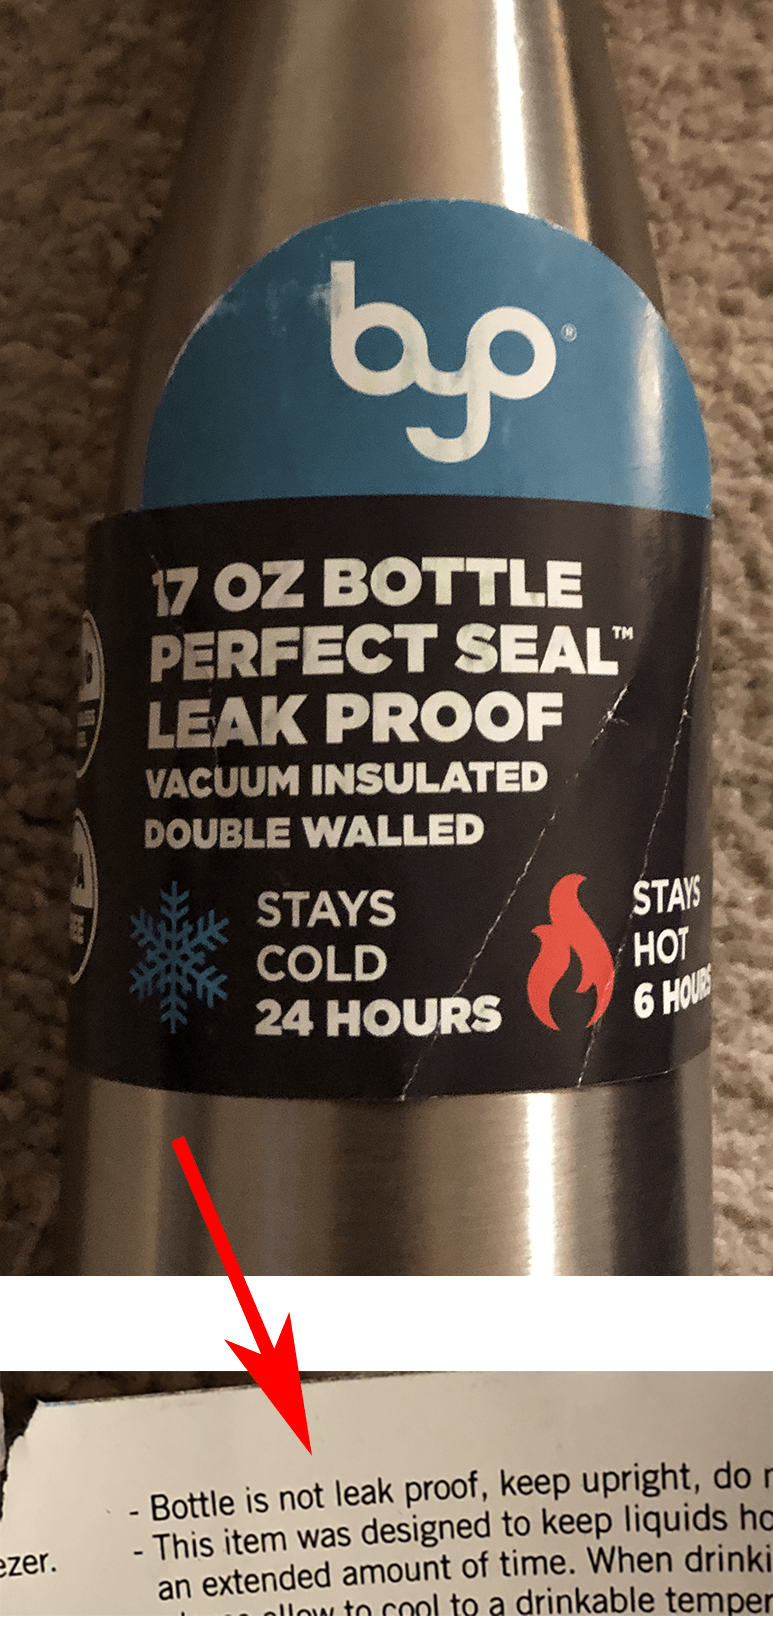 false advertising - Drink - bp 17 OZ BOTTLE PERFECT SEAL LEAK PROOF VACUUM INSULATED DOUBLE WALLED STAYS HOT STAYS COLD 24 HOURS 6 HOURS - Bottle is not leak proof, keep upright, do r - This item was designed to keep liquids ho an extended amount of time. When drinki llw to cool to a drinkable temper ezer.